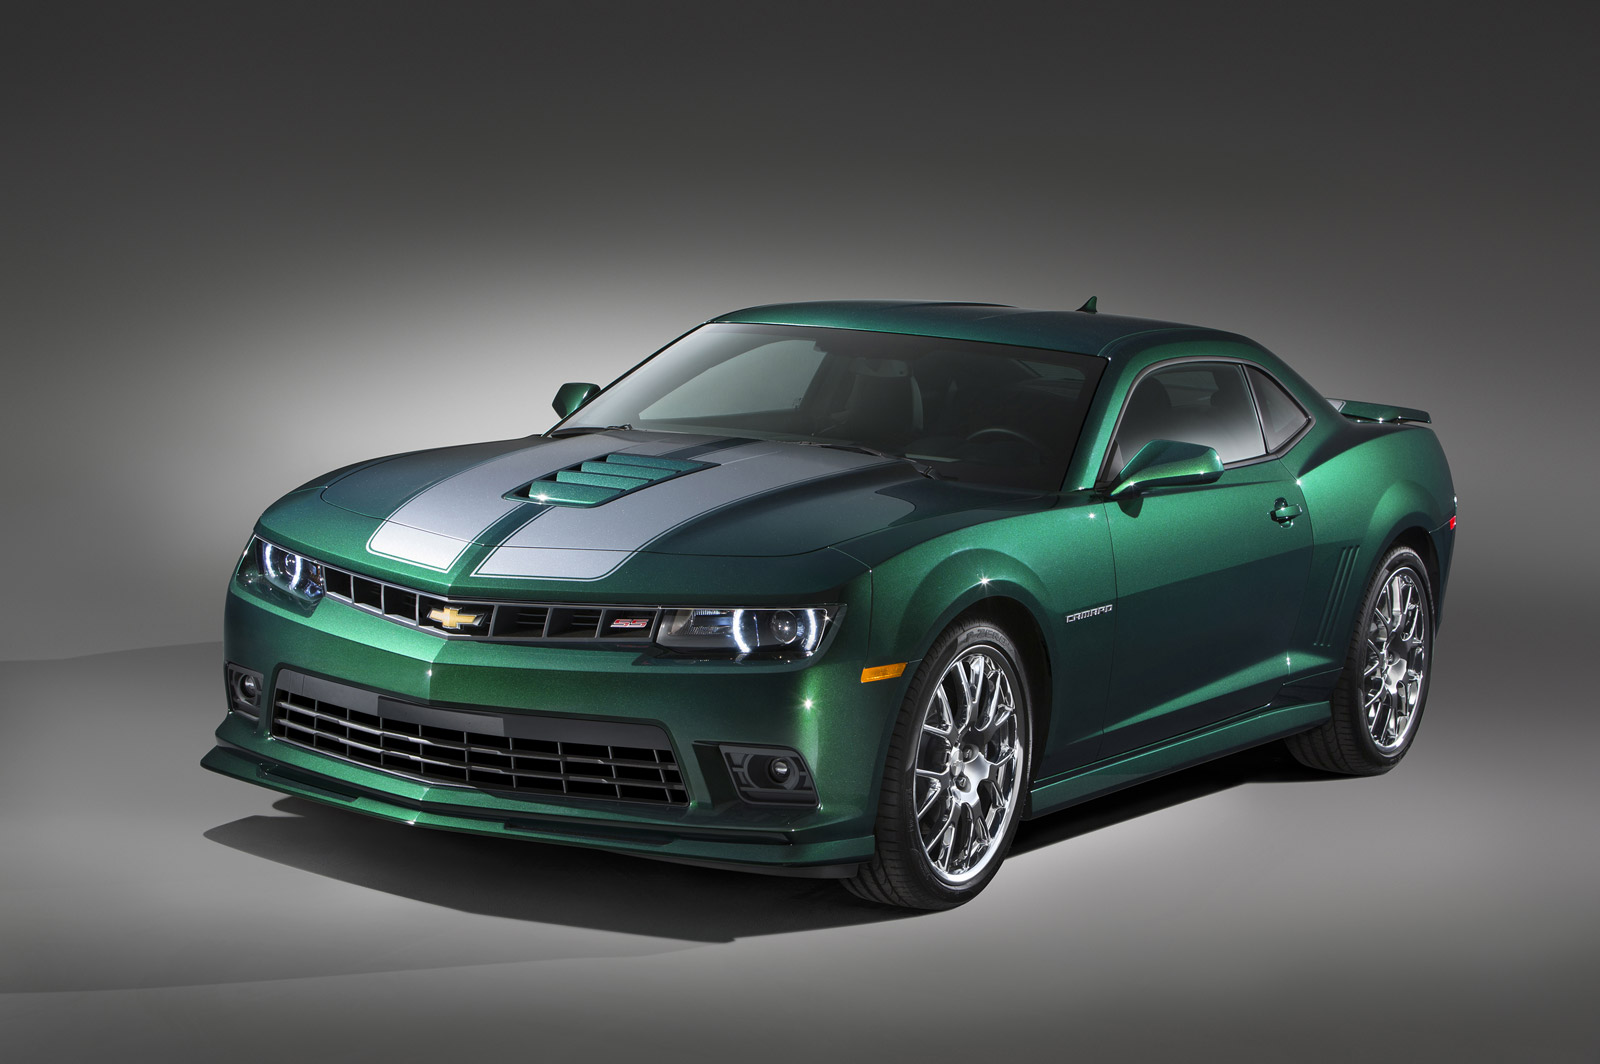 2015 chevrolet camaro chevy review ratings specs prices and photos the car connection. Black Bedroom Furniture Sets. Home Design Ideas